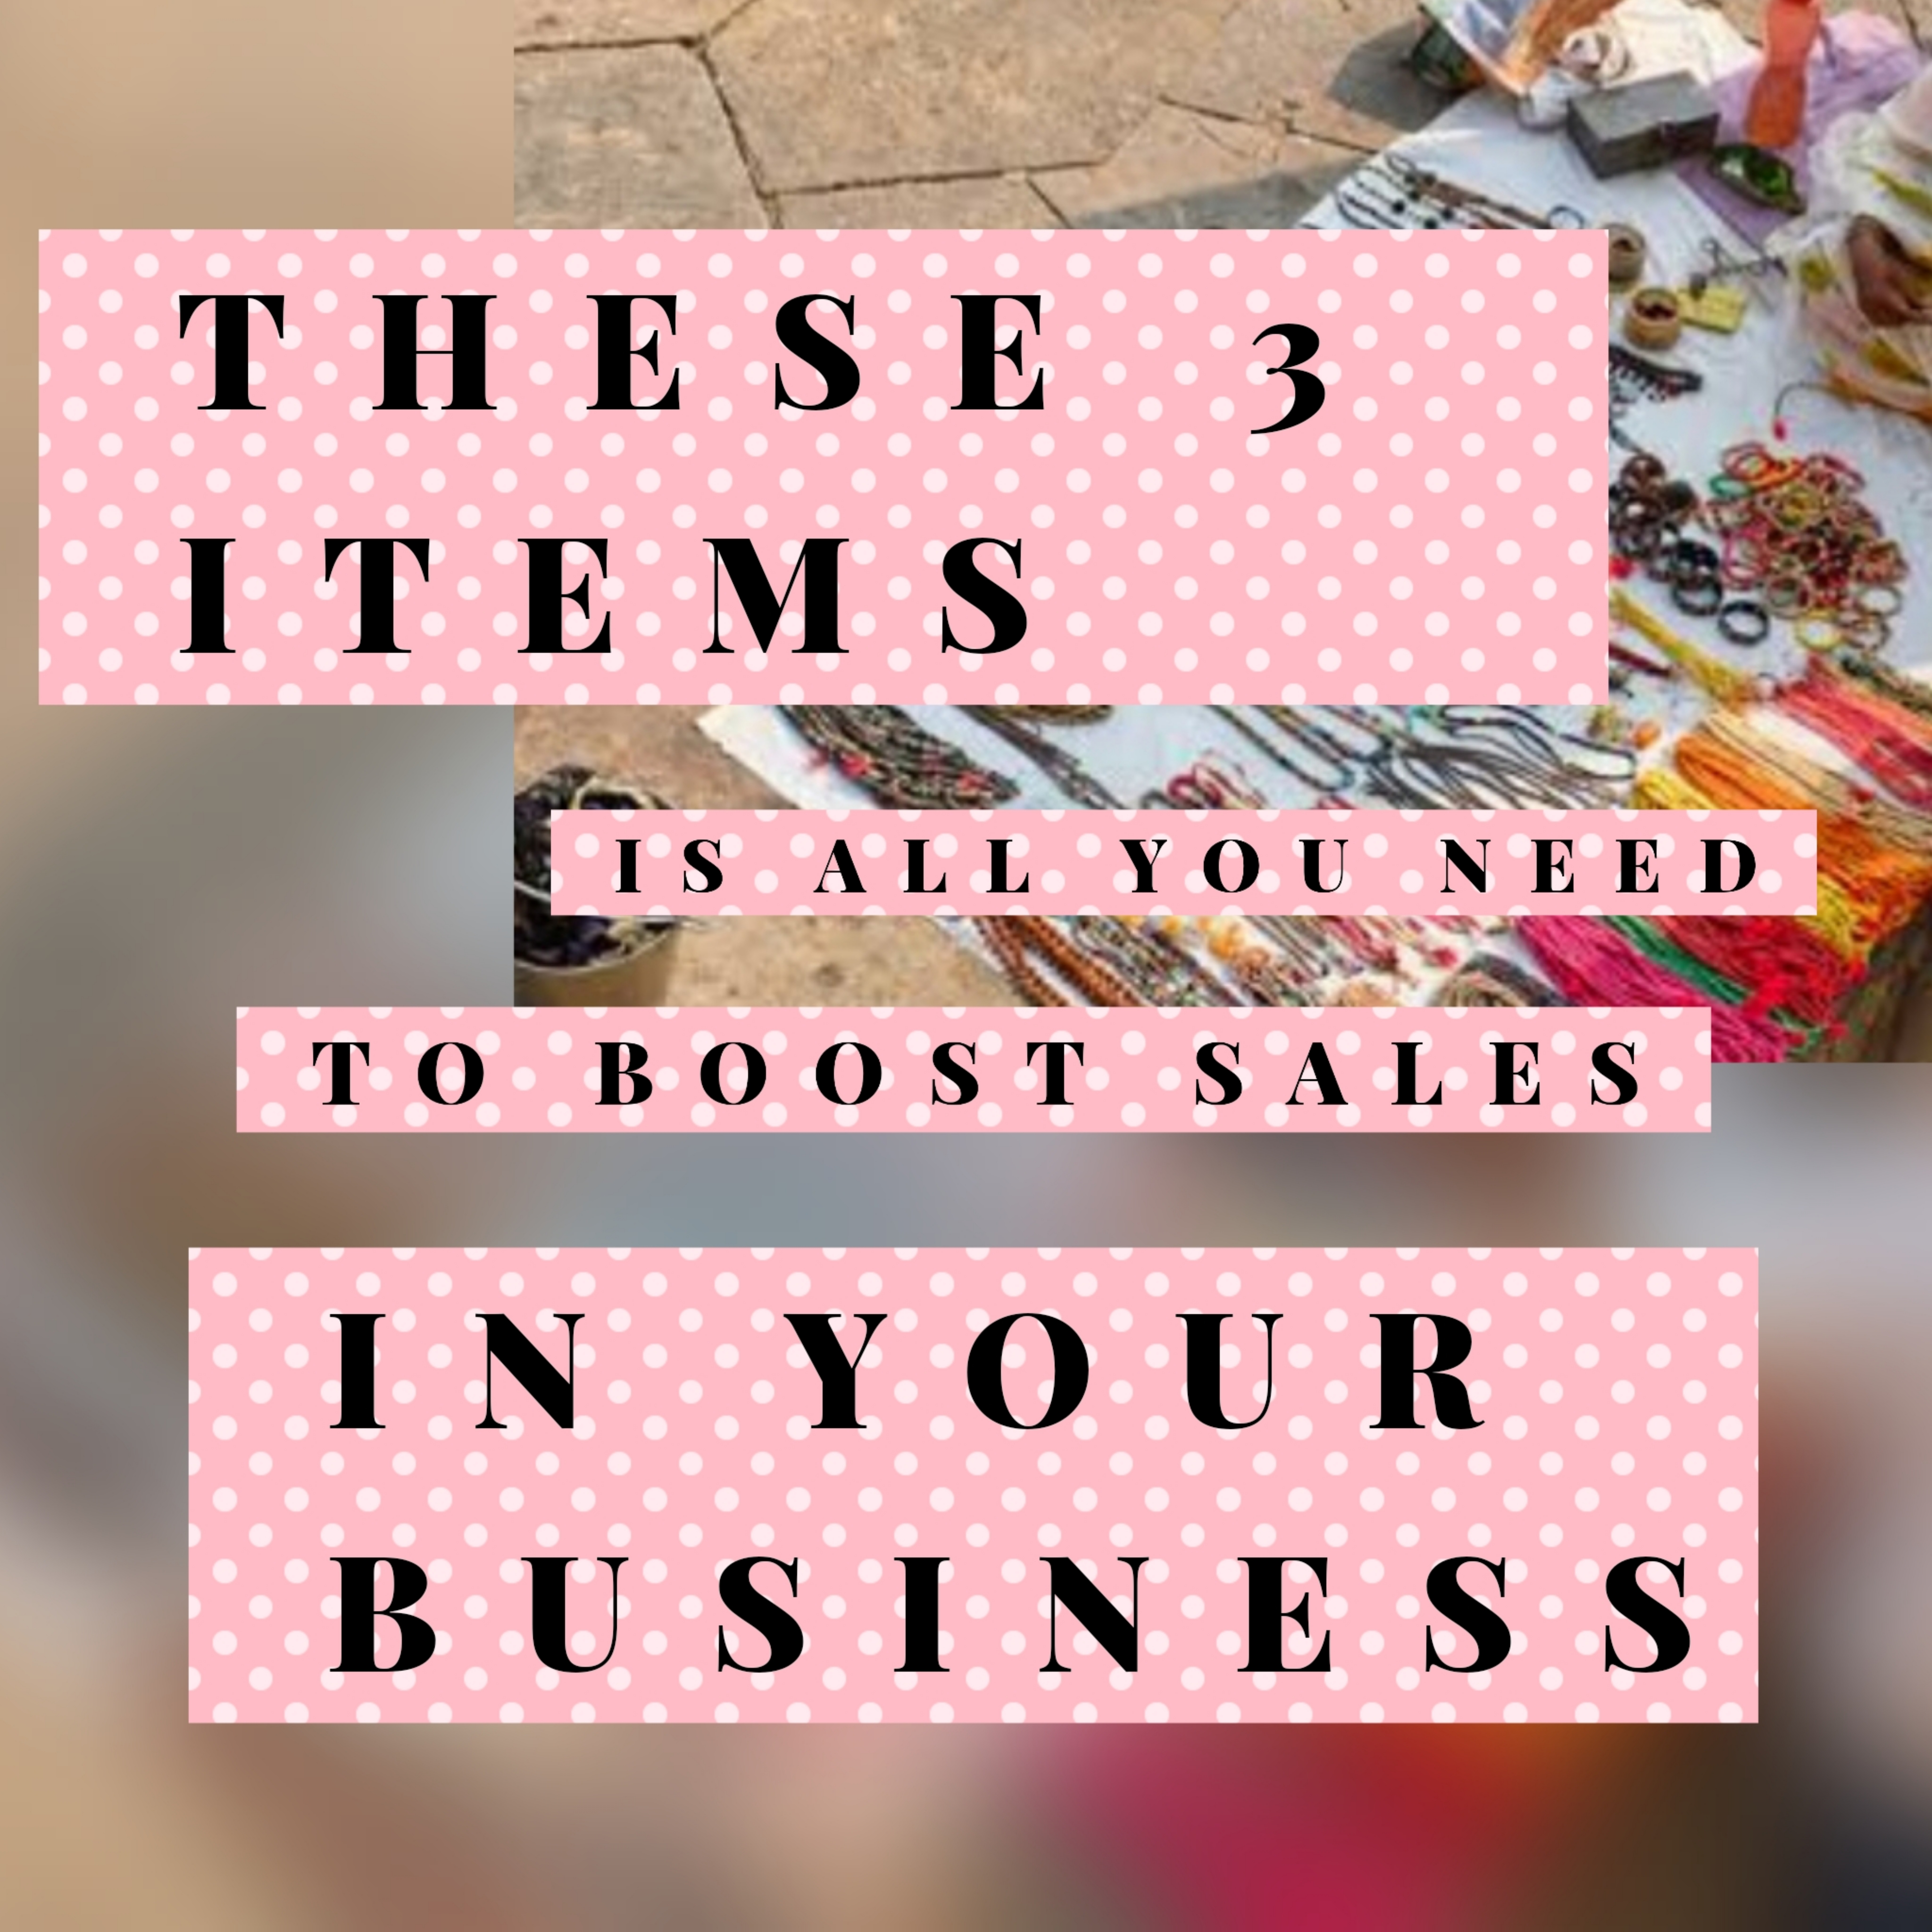 3 Items Needed To Boost Sales in Your Business